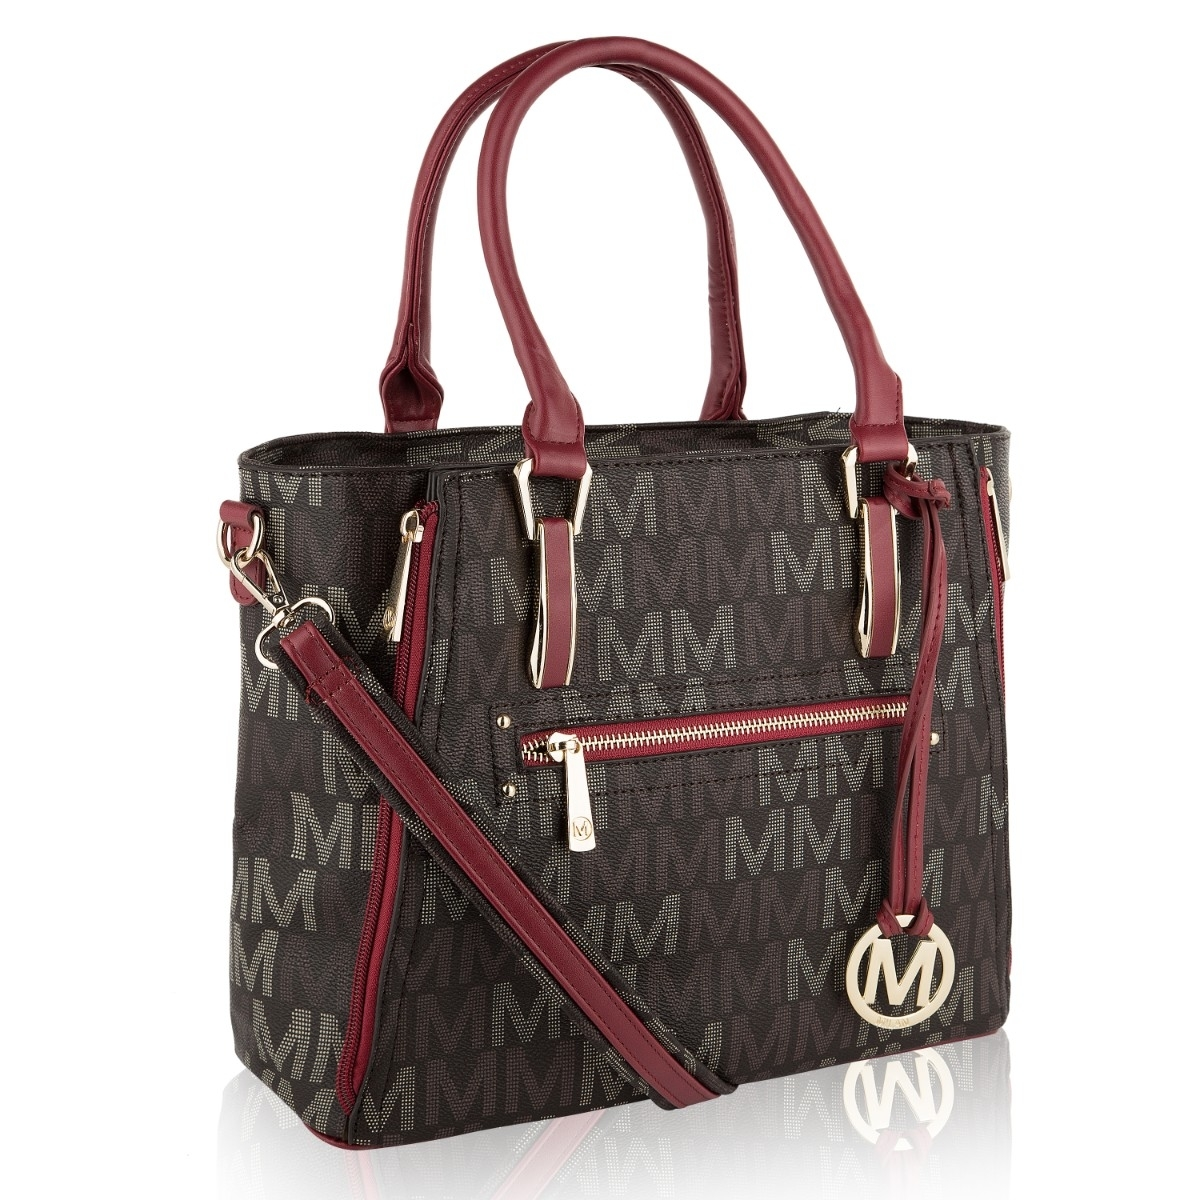 MKF Collection Siena M Signature Handbag by Mia K. Farrow